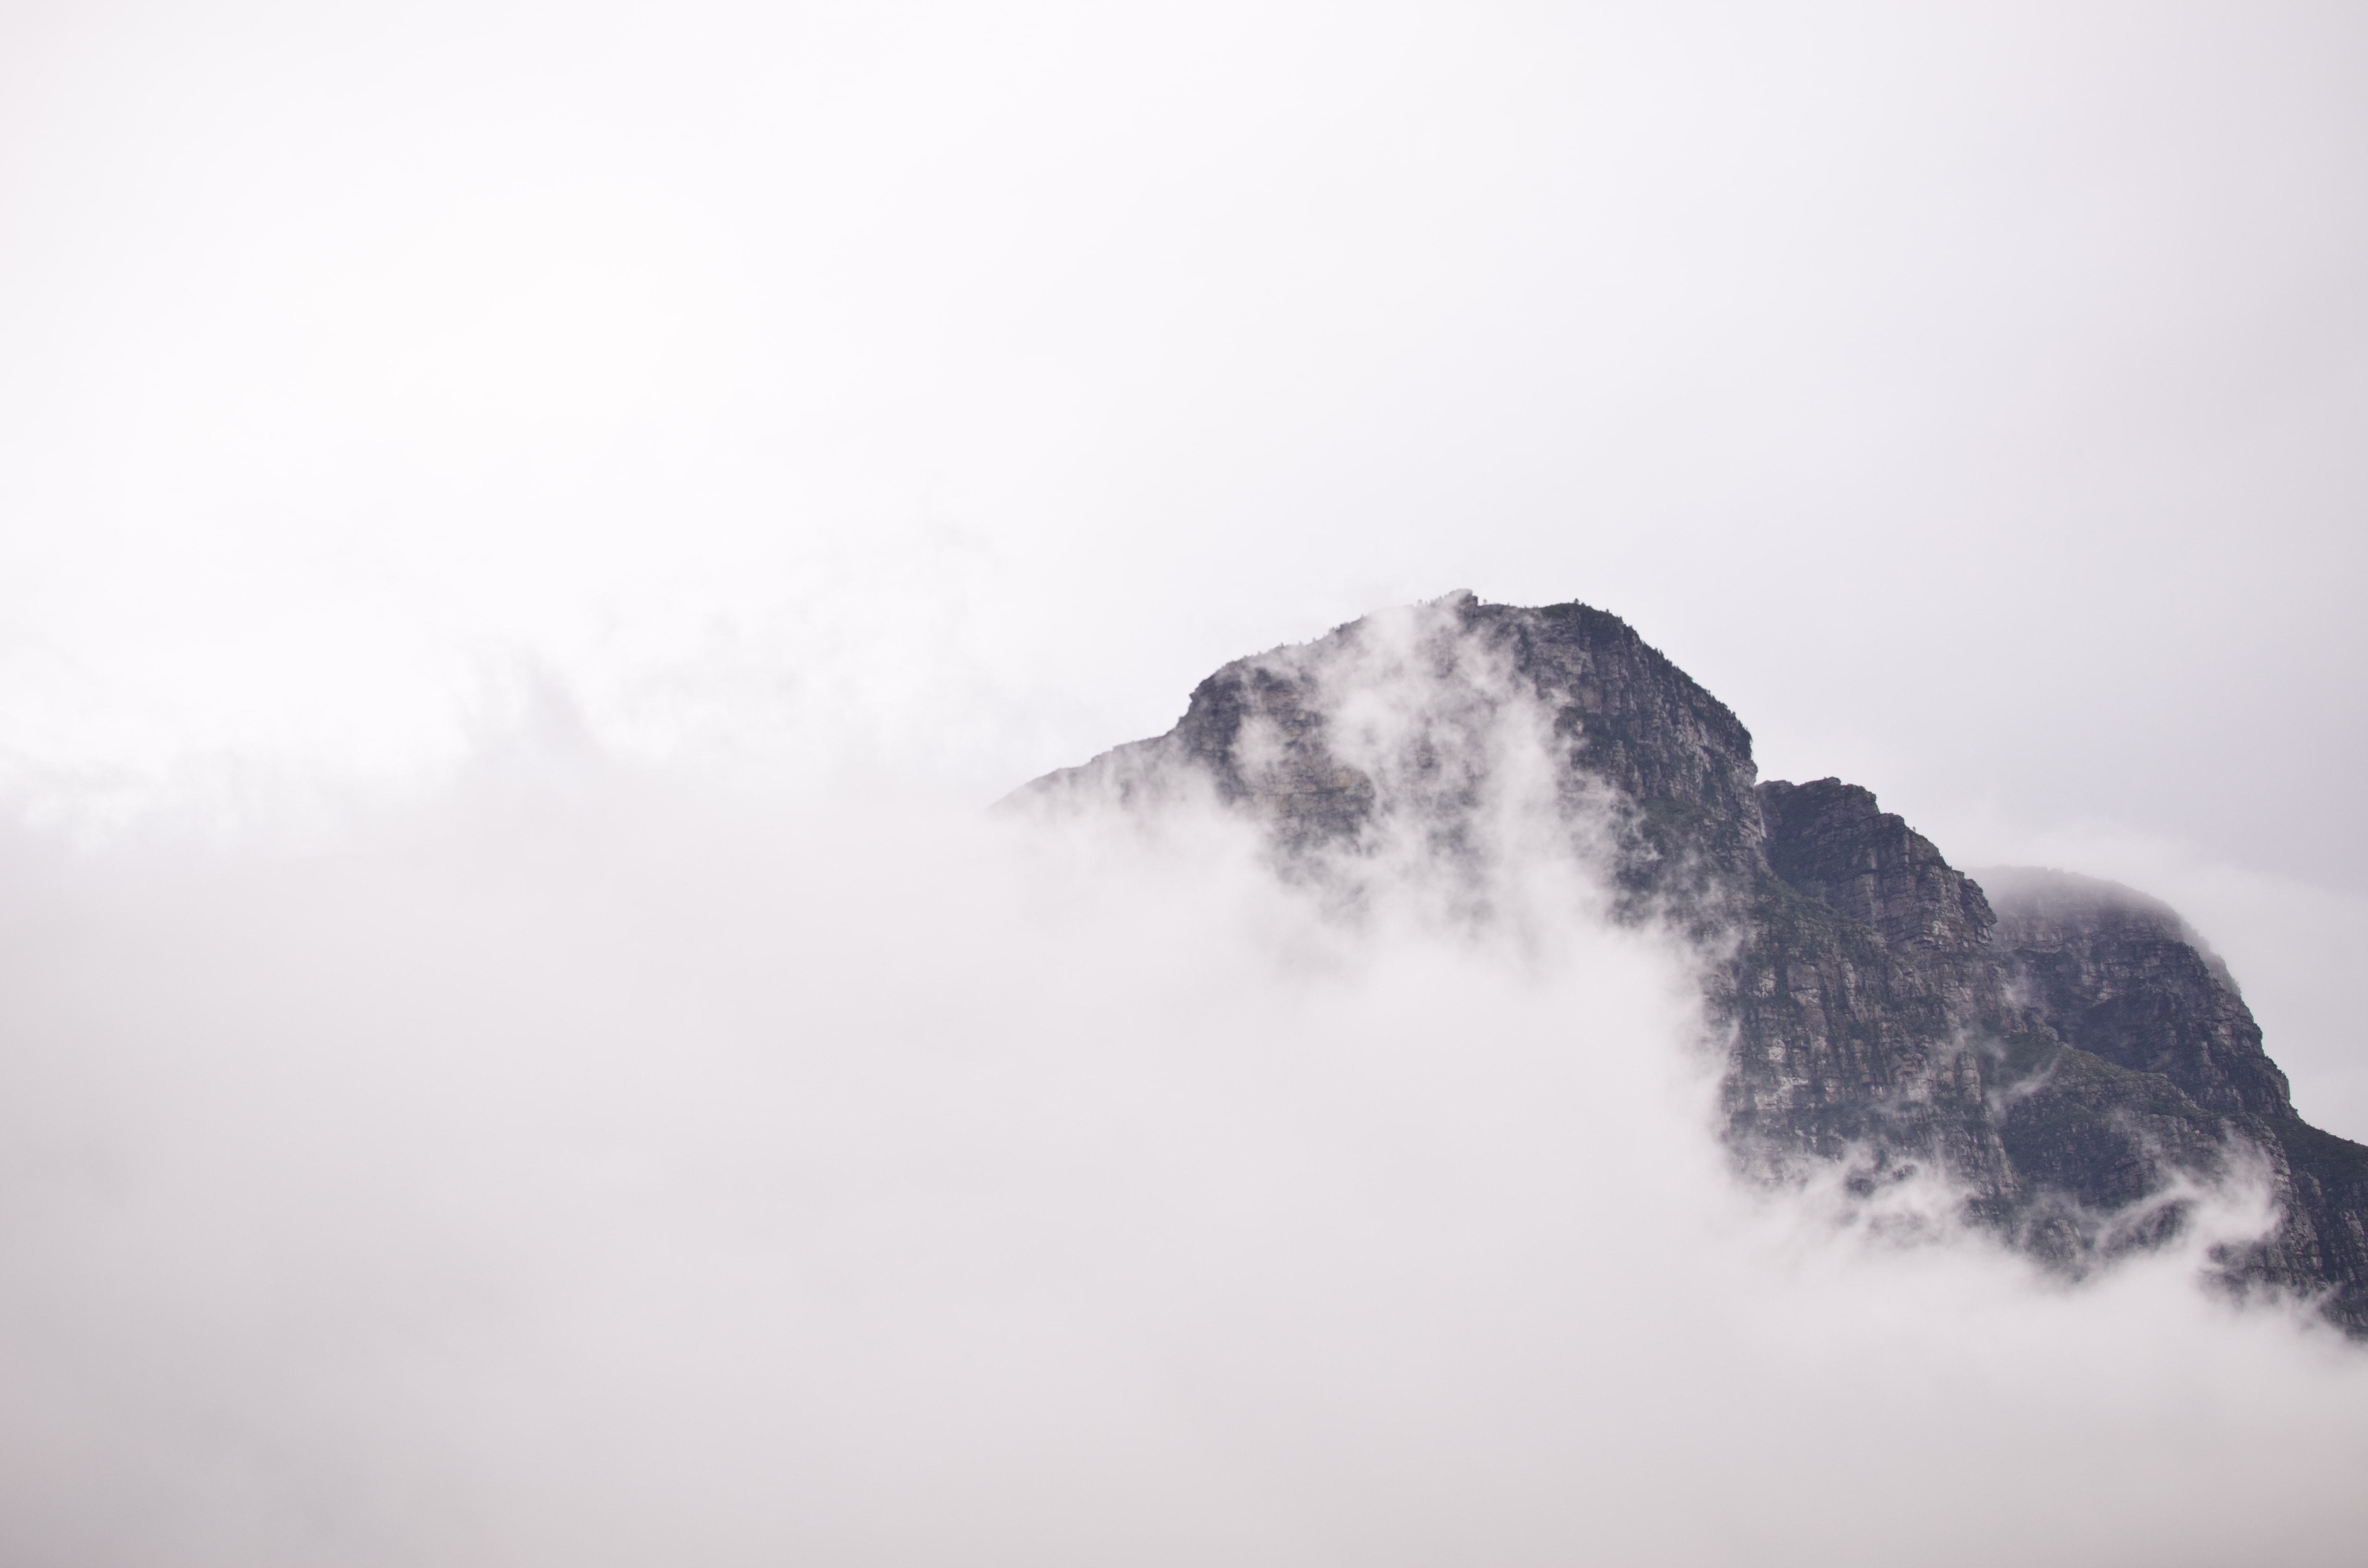 Peak of Table Mountains peek through white mist